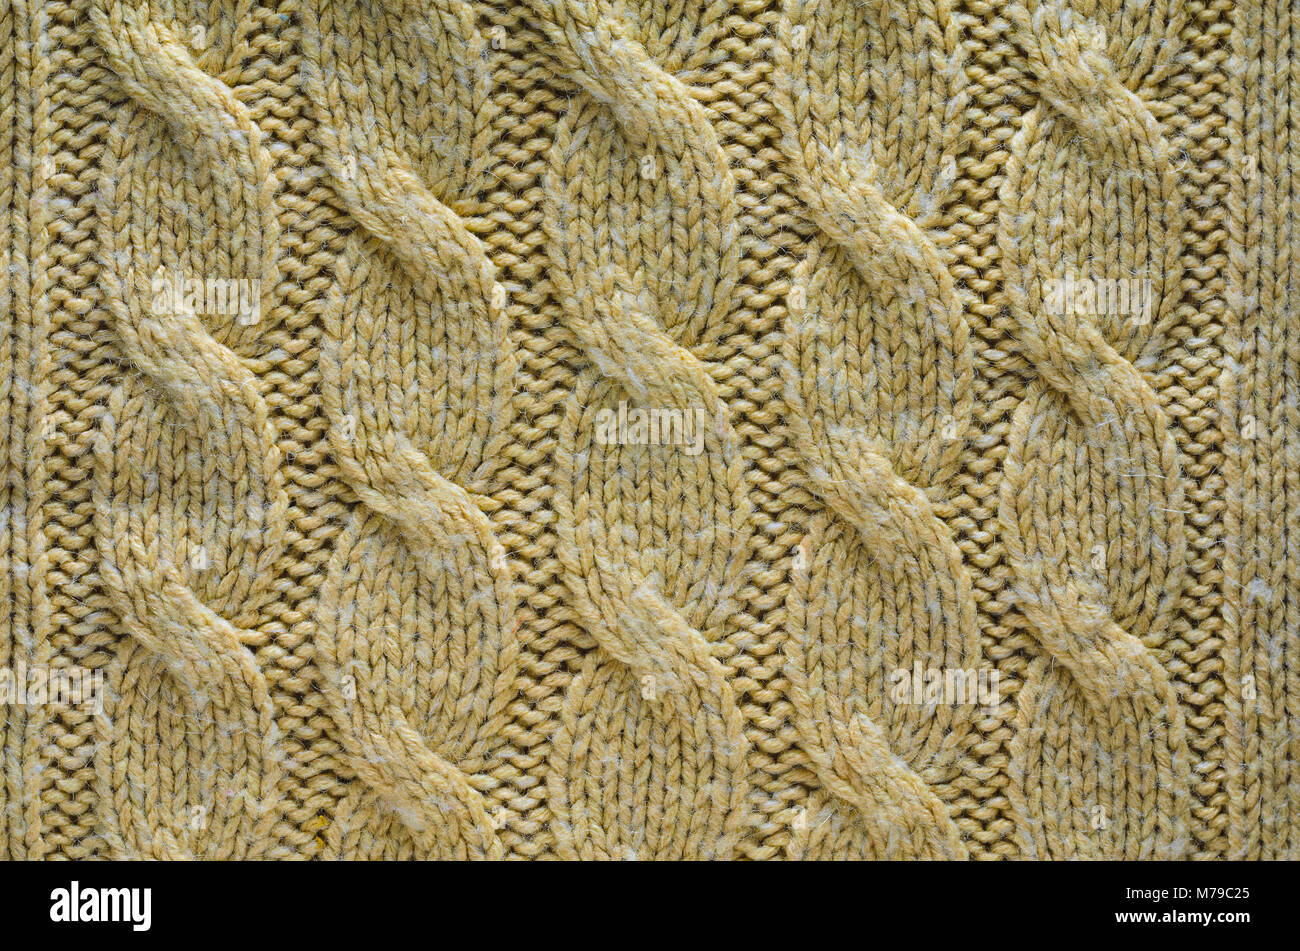 Knit Texture of Beige Wool Knitted Fabric with Cable Knits Pattern ...